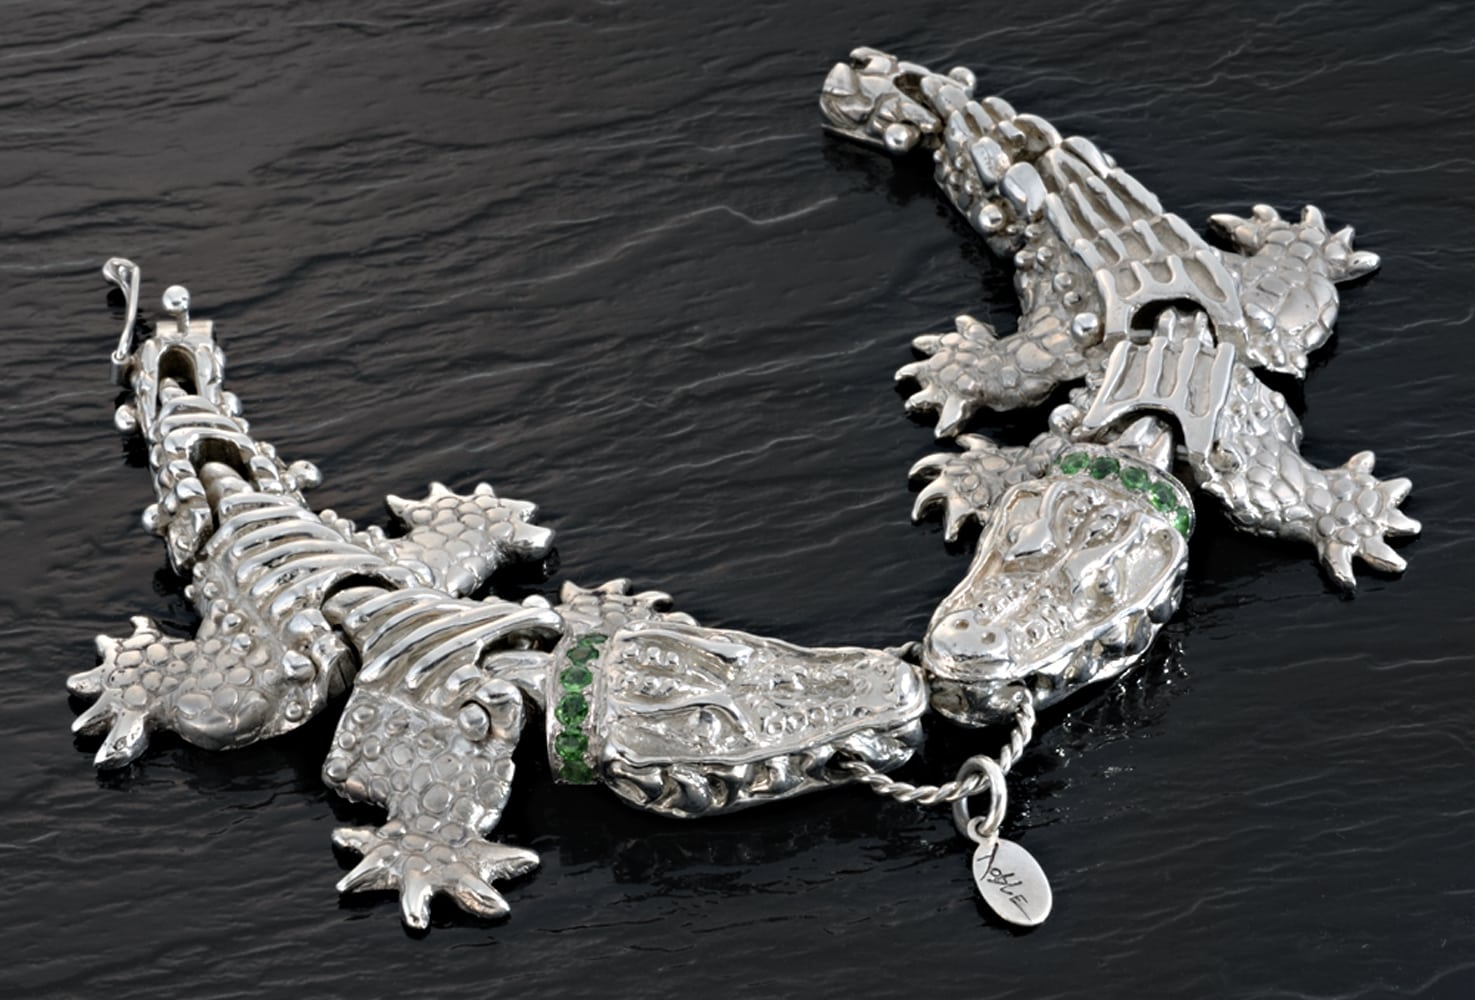 Silver Alligator bracelet with two alligators biting center ring. Alligators have collars with emeralds all on shiny black patterned background Product Photography